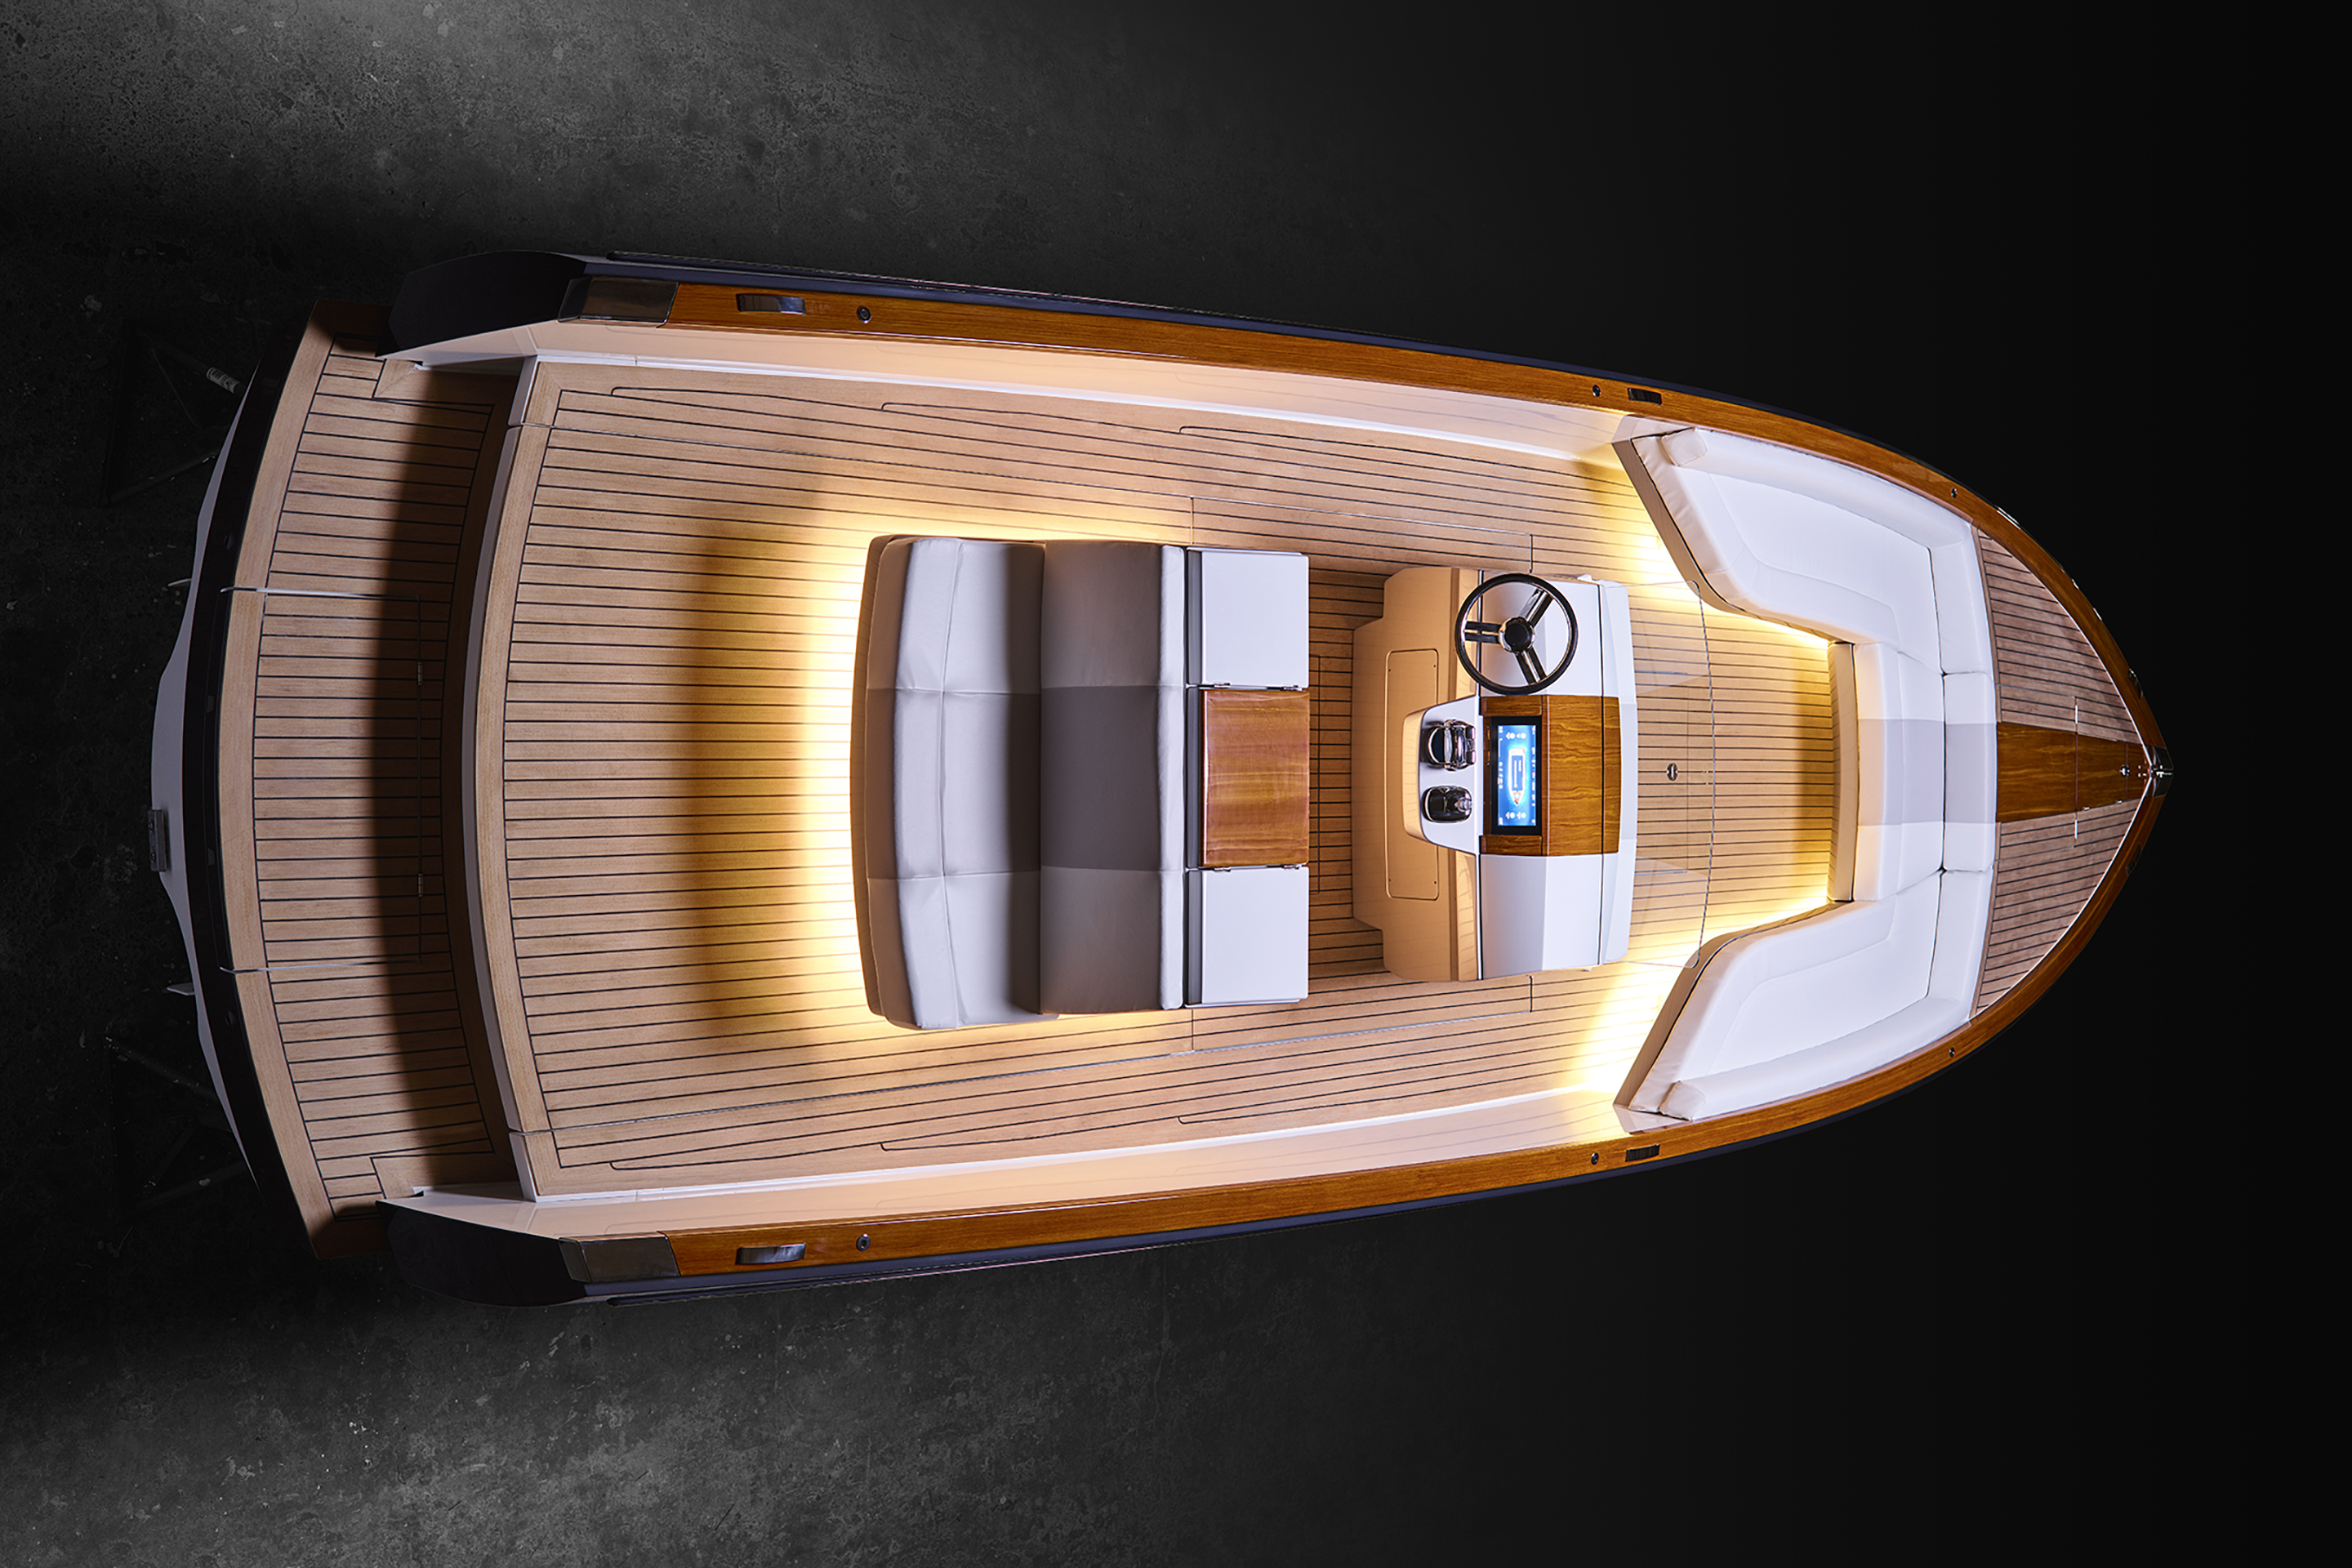 Hinckley Yachts unveiled the Dasher, a 28.6-foot fully electric yacht Thursday, September 14, 2017 at the Newport International Boat Show. The company says it's the first fully electric luxury yacht in the world.